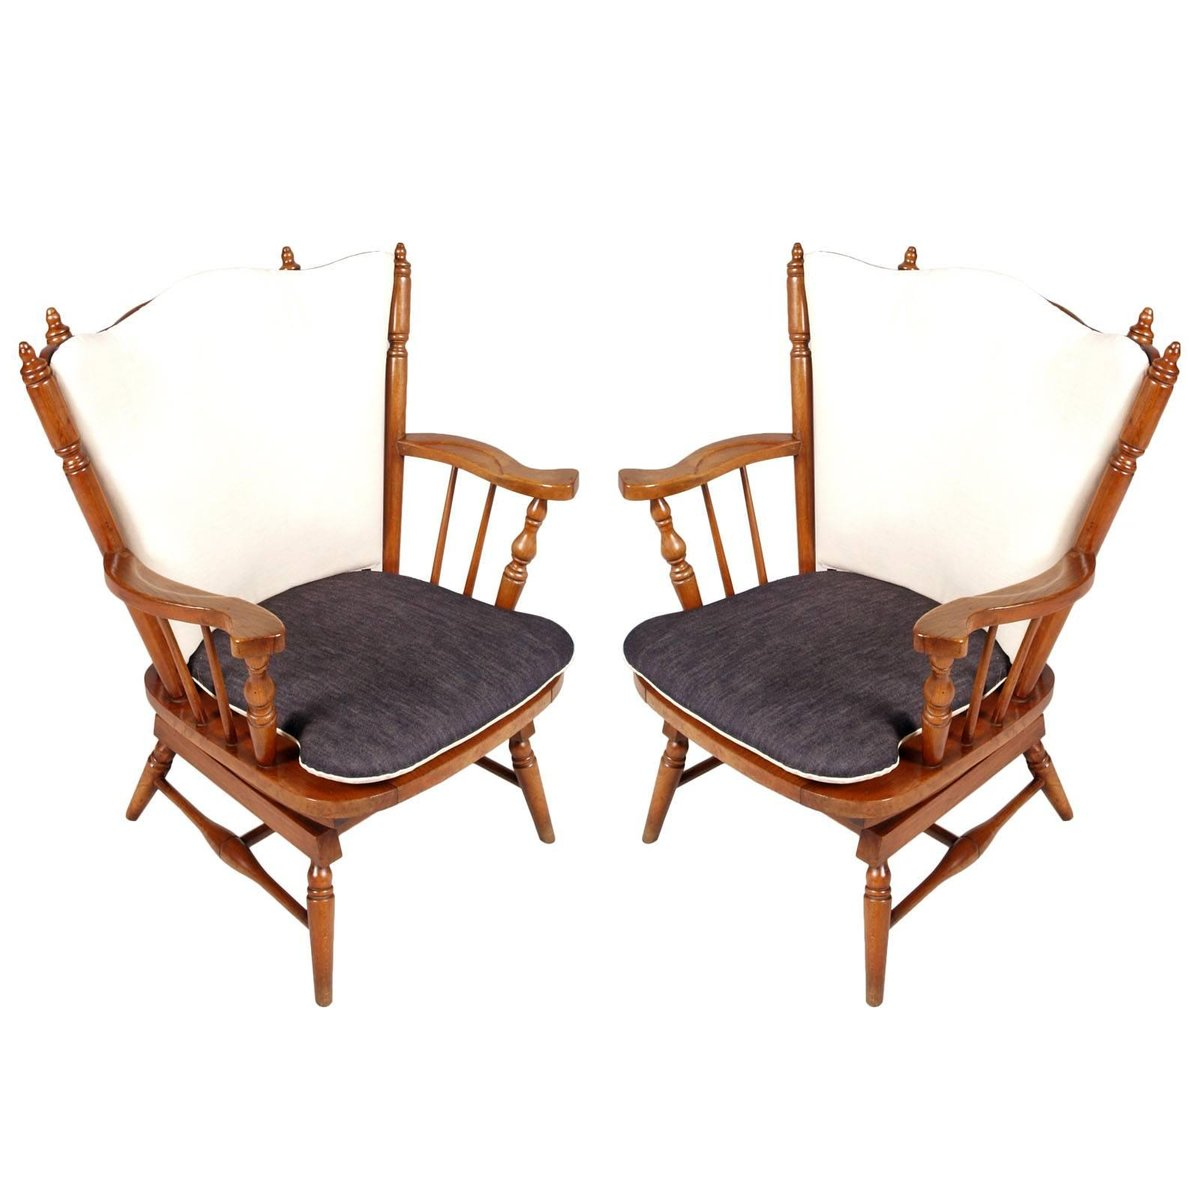 Spring Rocking Chair Chiavari Chestnut Rocking Chairs With Springs 1930s Set